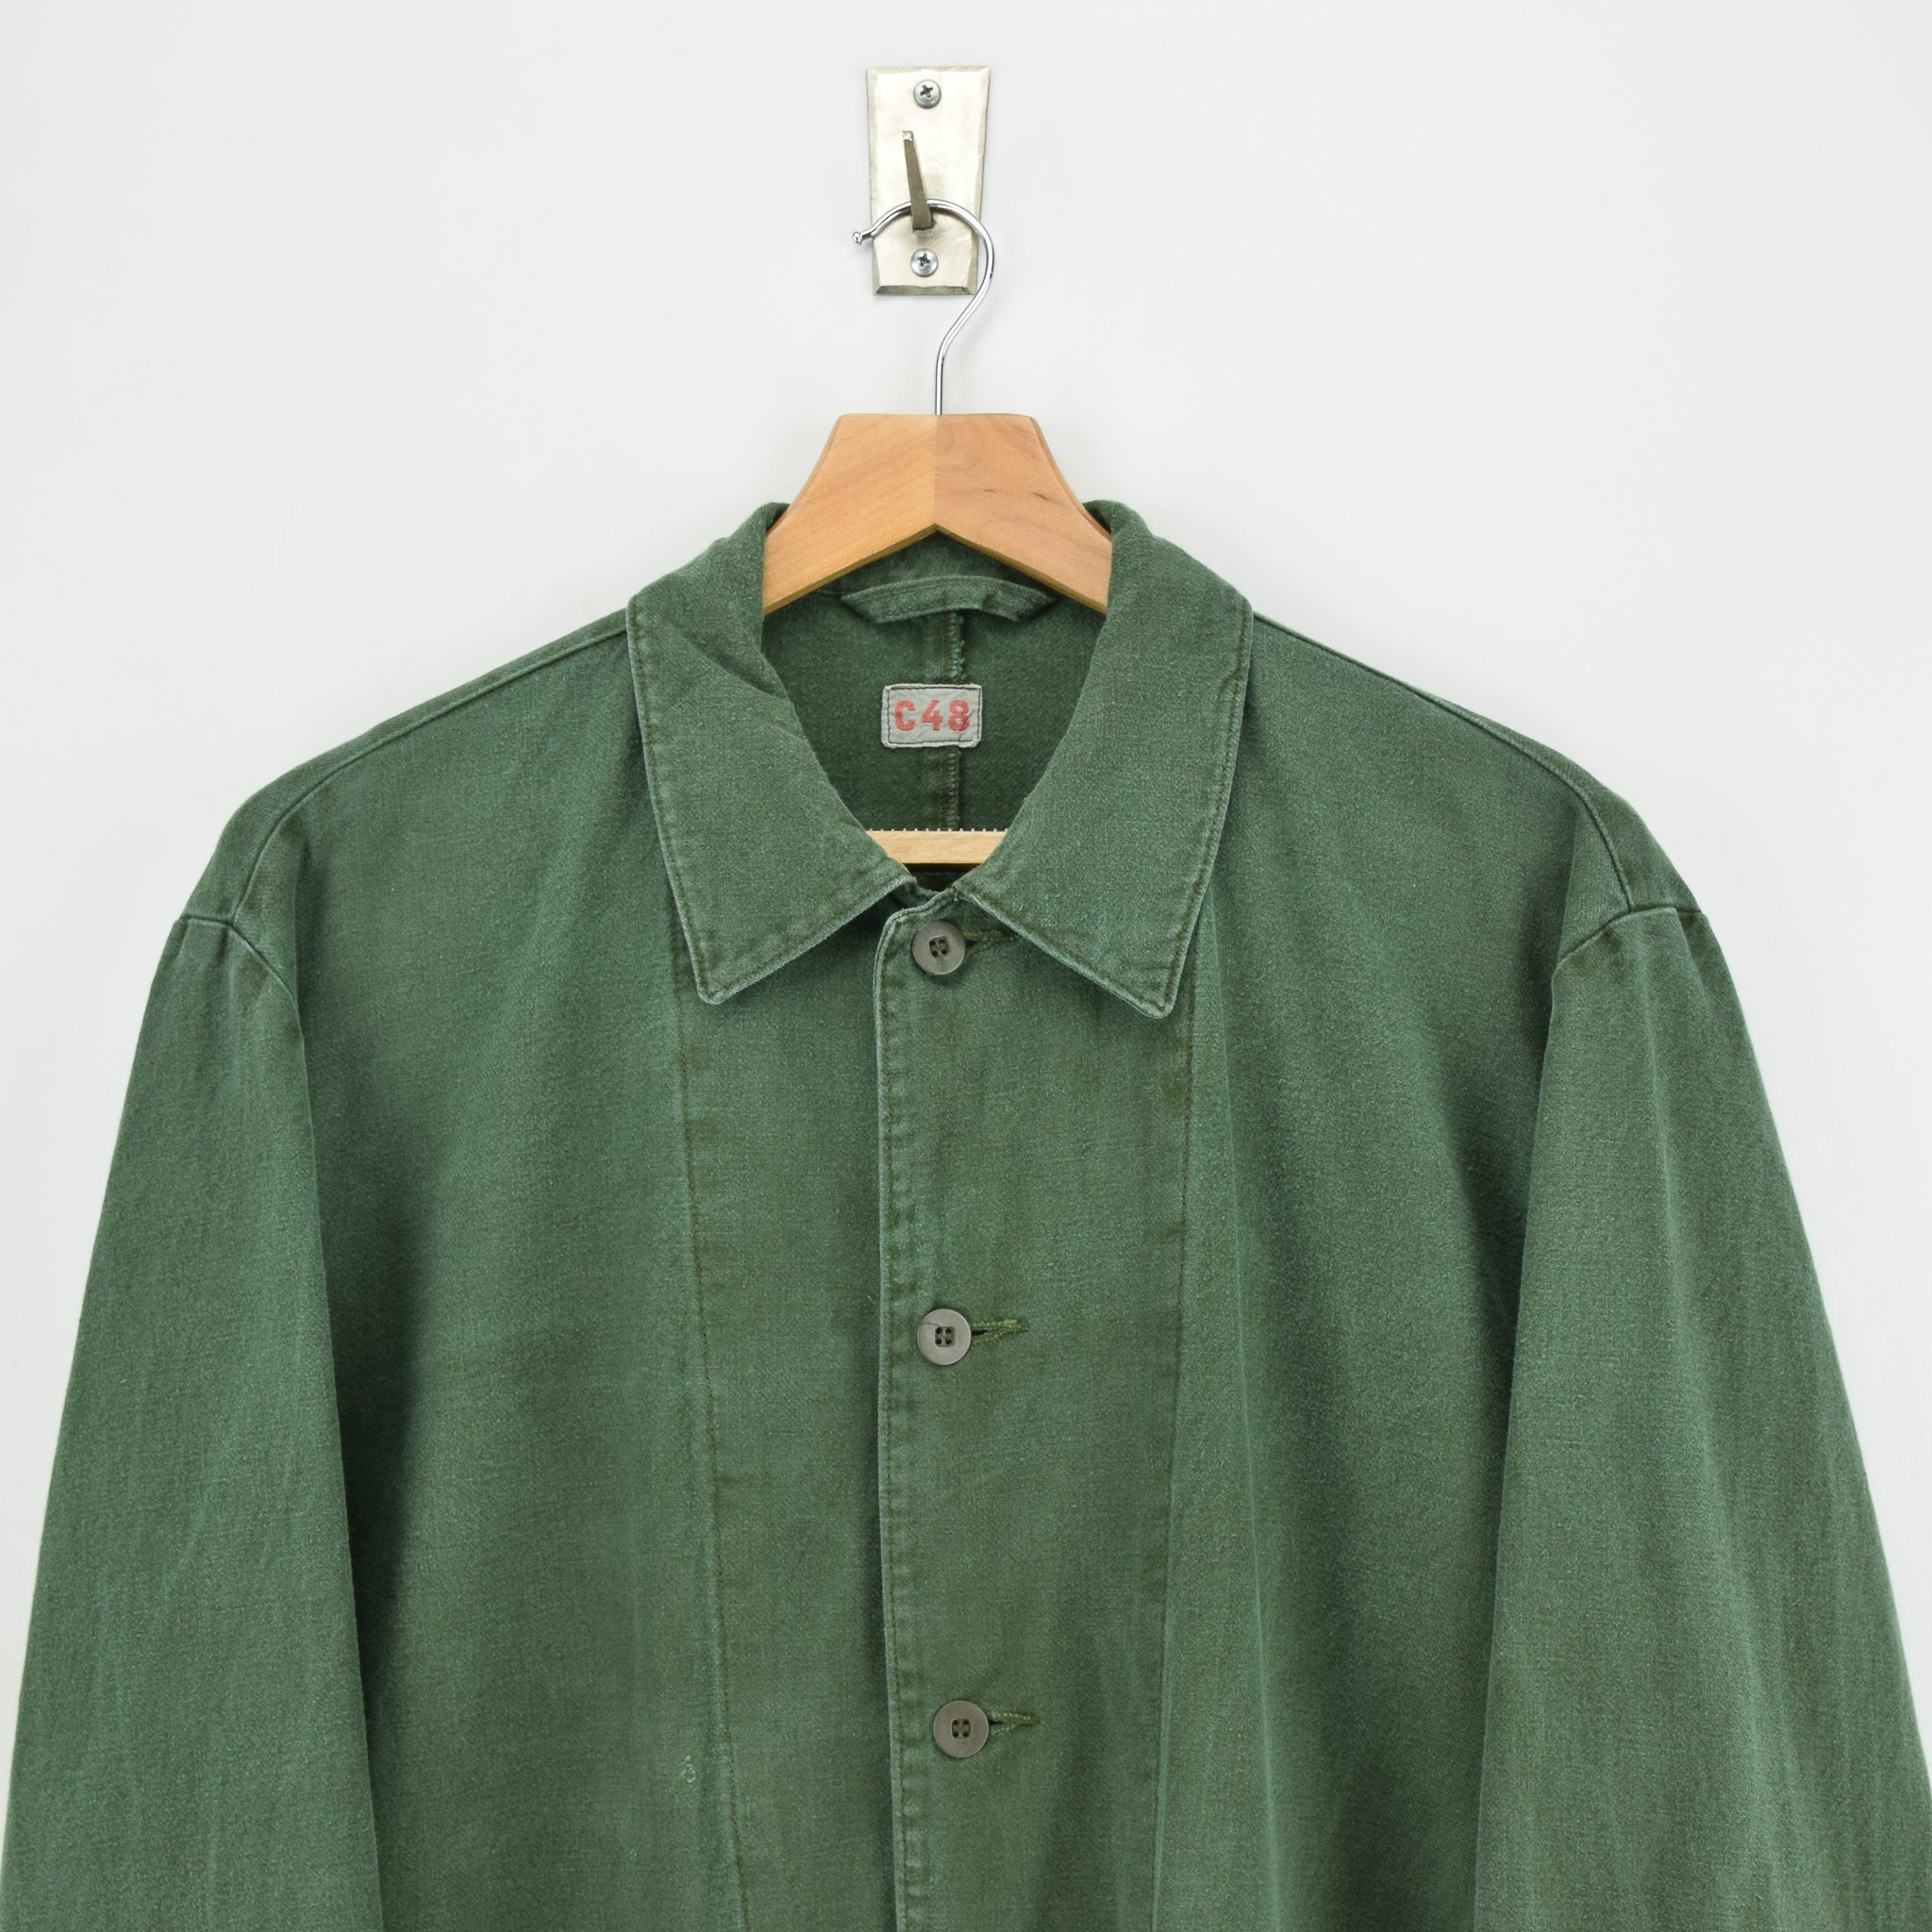 Vintage Swedish Worker Style Green Distressed Military Cotton Field Jacket M / L chest